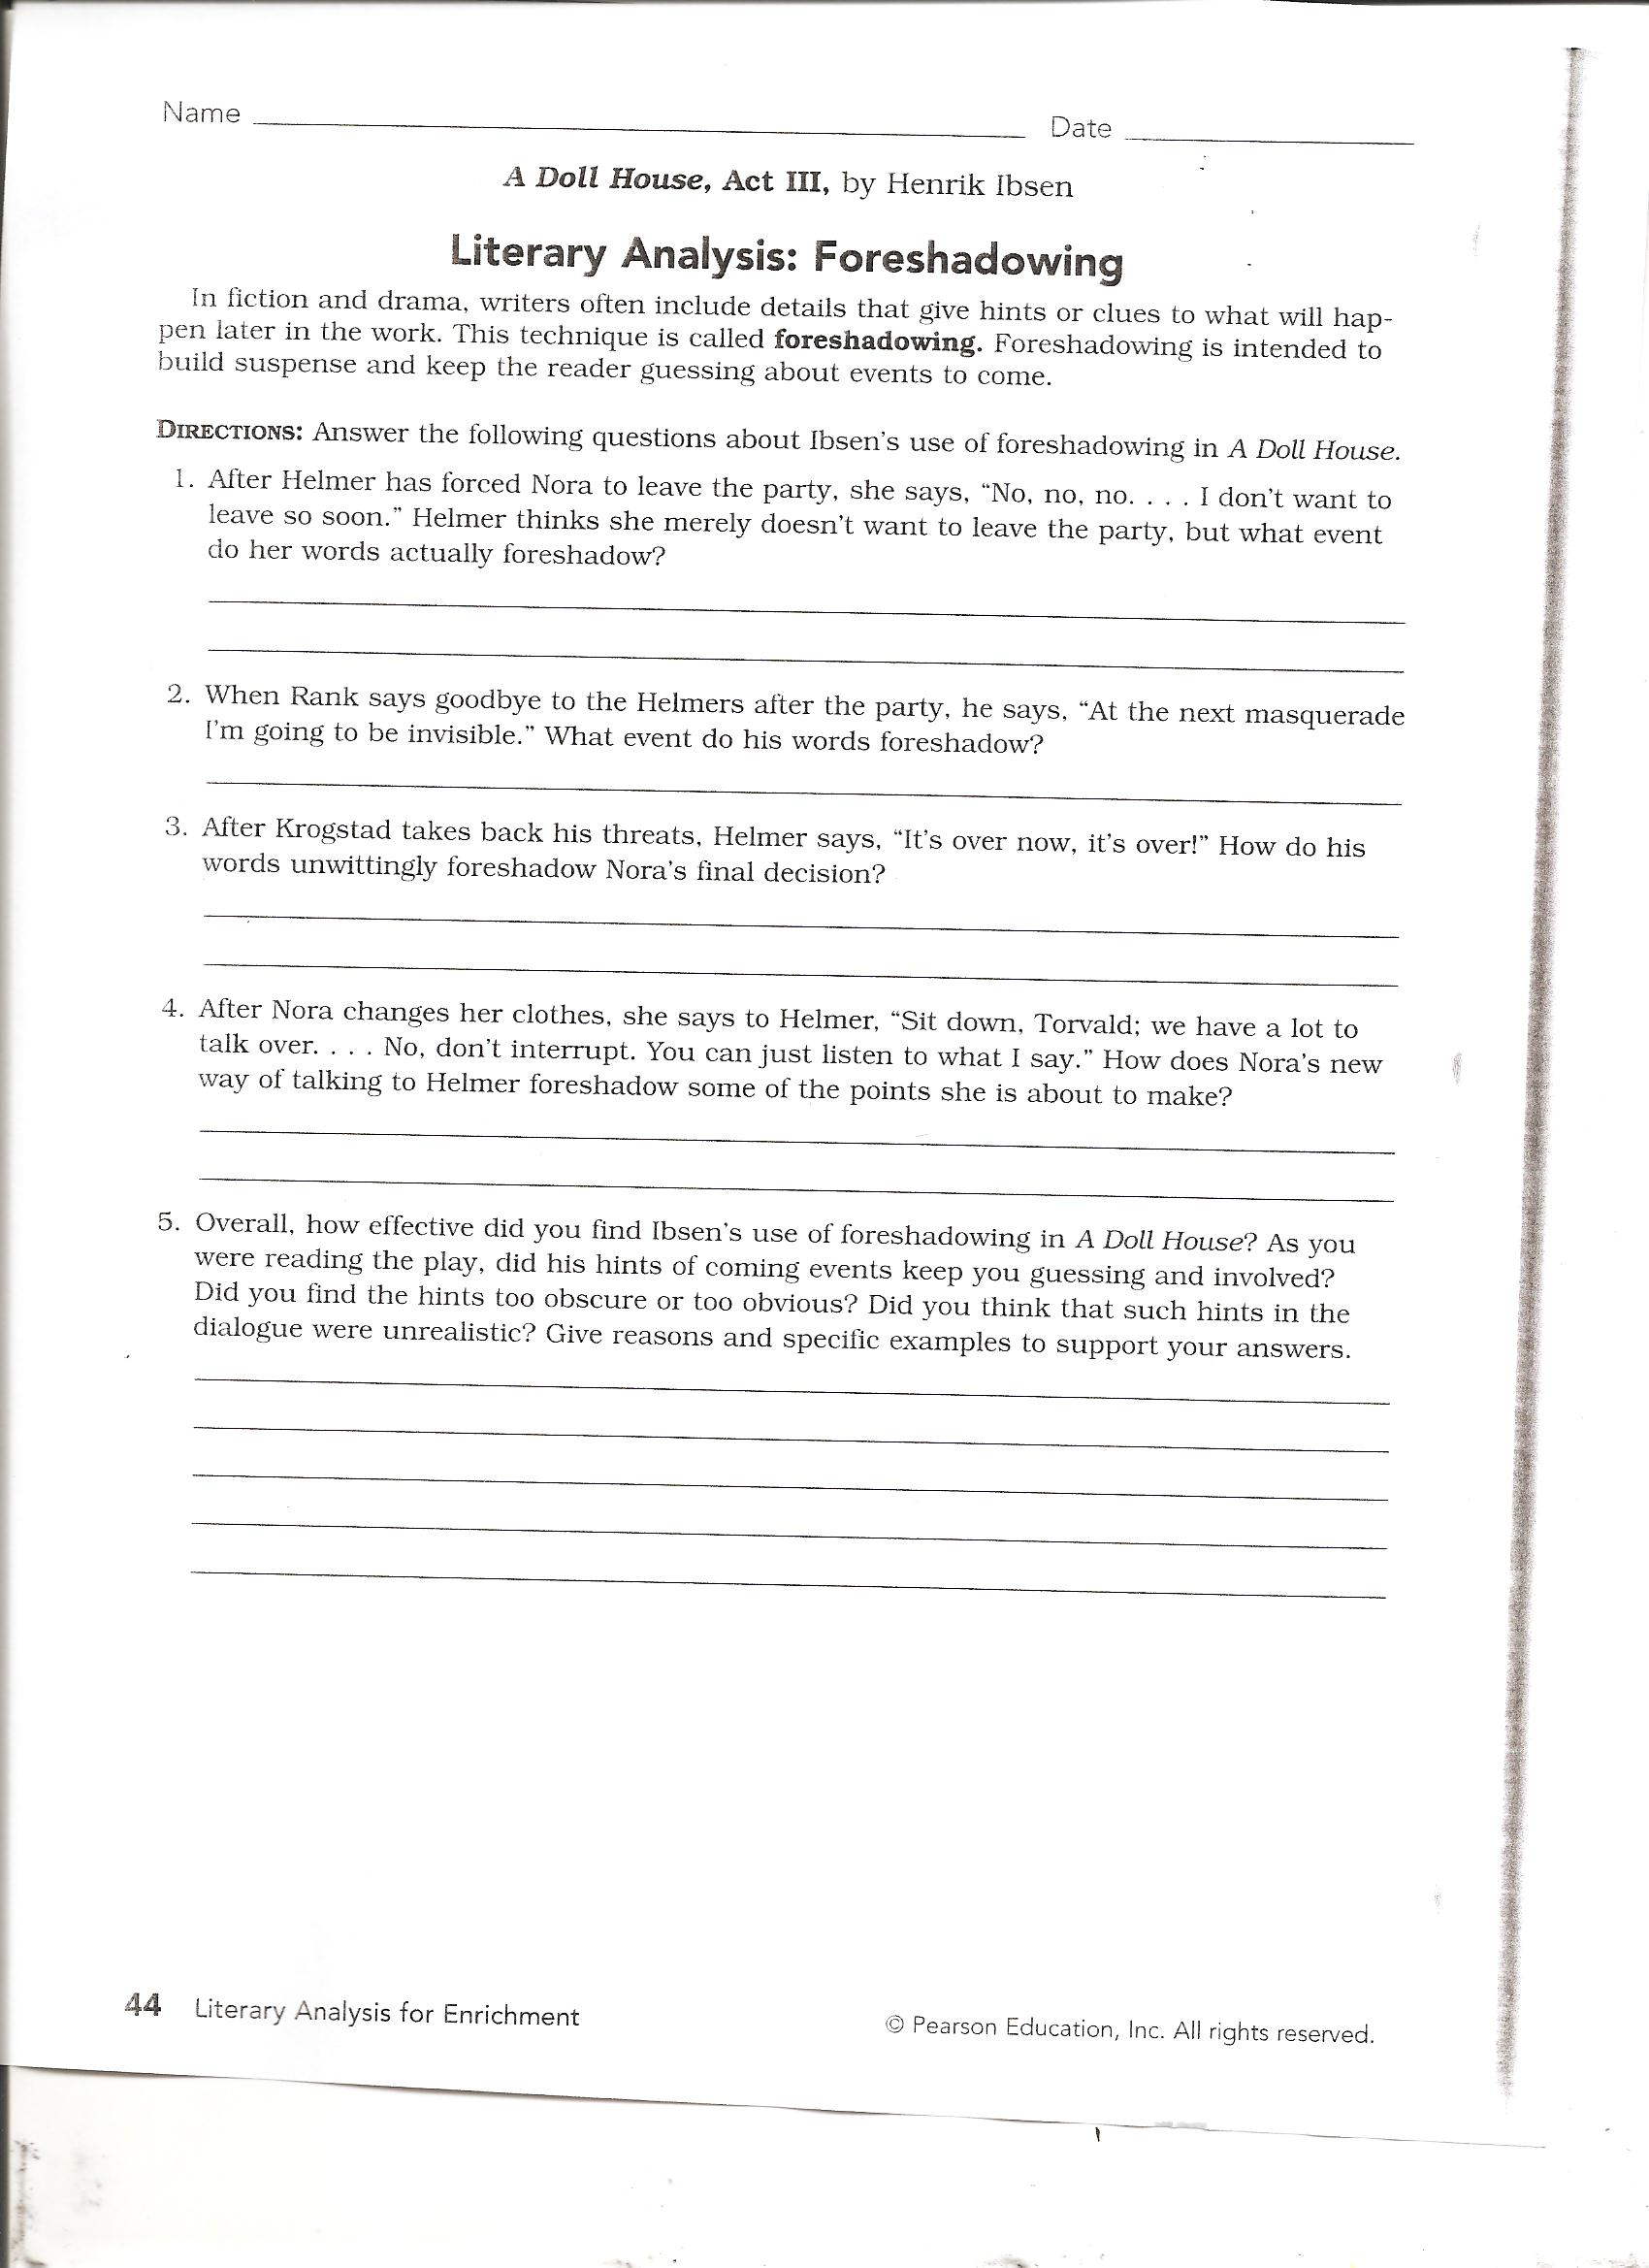 Free Worksheet Foreshadowing Worksheets foreshadowing practice related keywords suggestions worksheets pdf share the knownledge